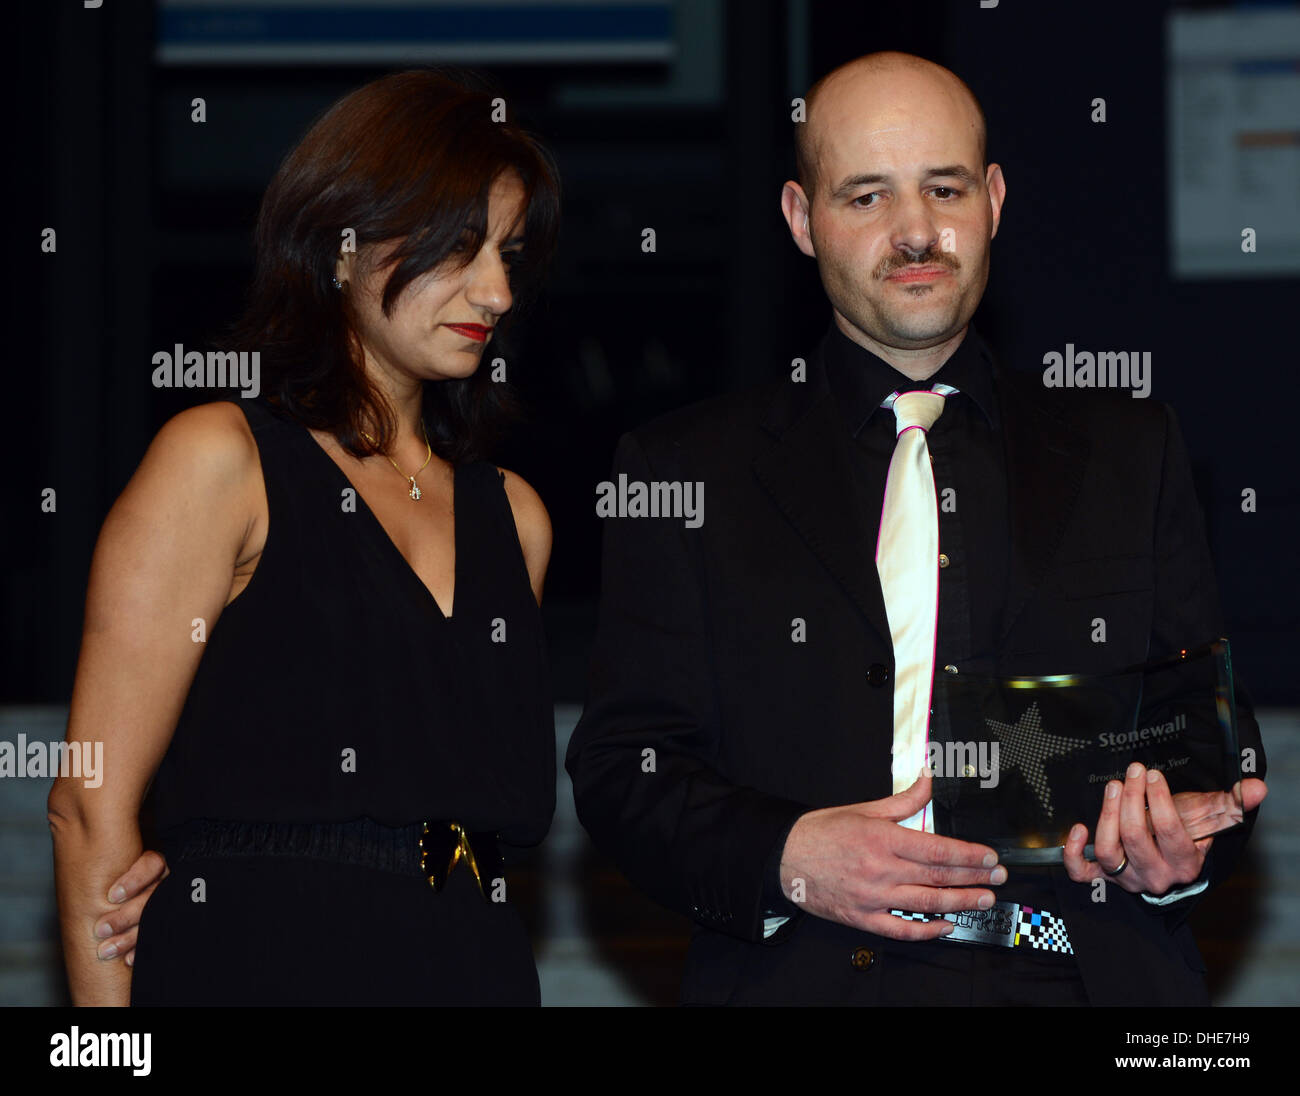 London, UK. 7th Nov 2013.  Stonewall Broadcast of the year Stonewall Awards 2013 taking place at the Victoria and Albert Museum. Credit:  See Li/Alamy Live News - Stock Image